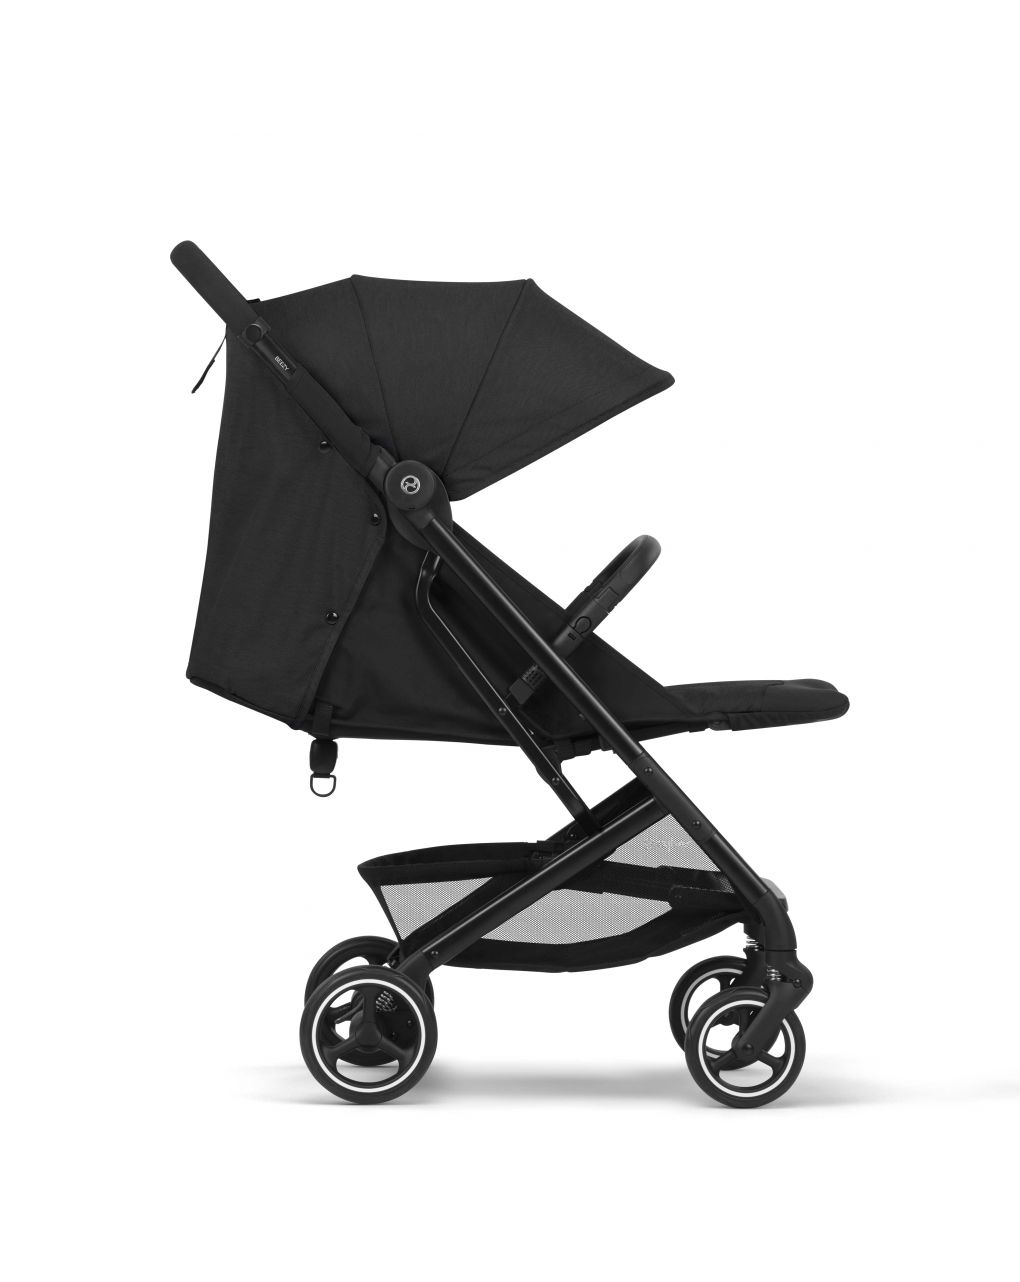 Cybex gold beezy deep black - Cybex